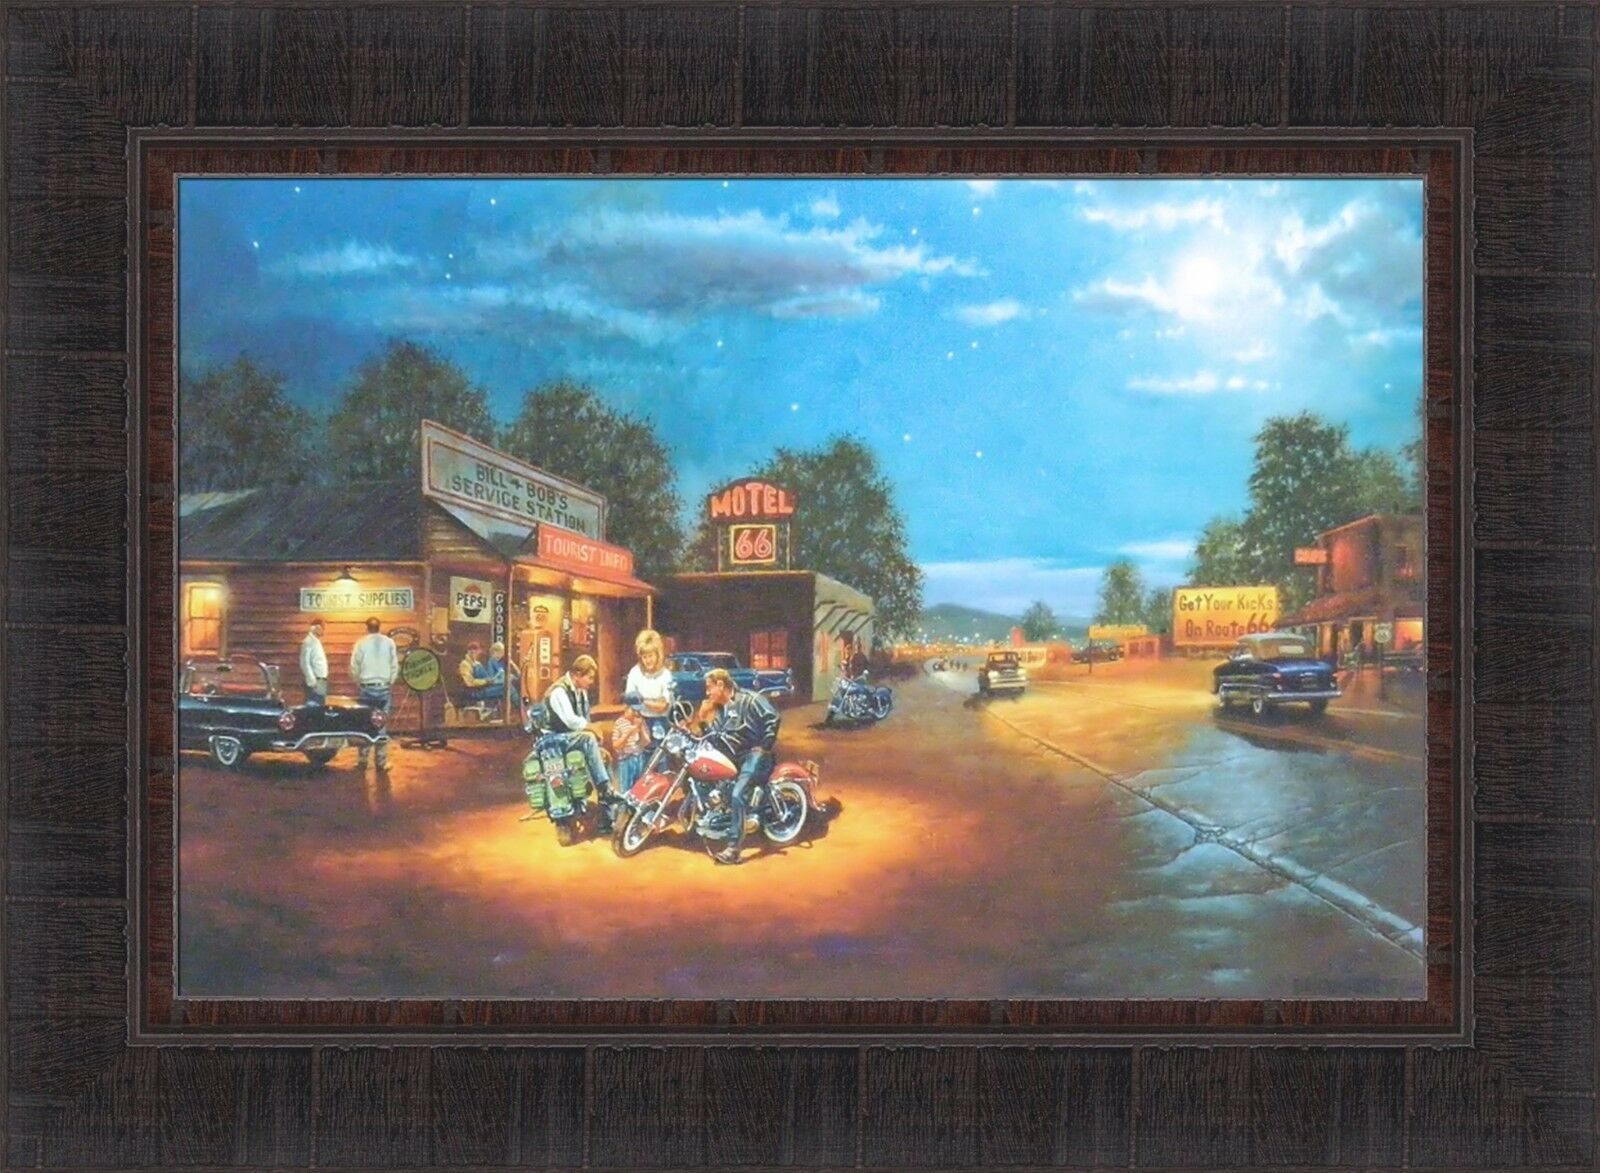 ROUTE 66 BY Dave Barnhouse 17x23 FRAMED ART PRINT Harley Davidson ...